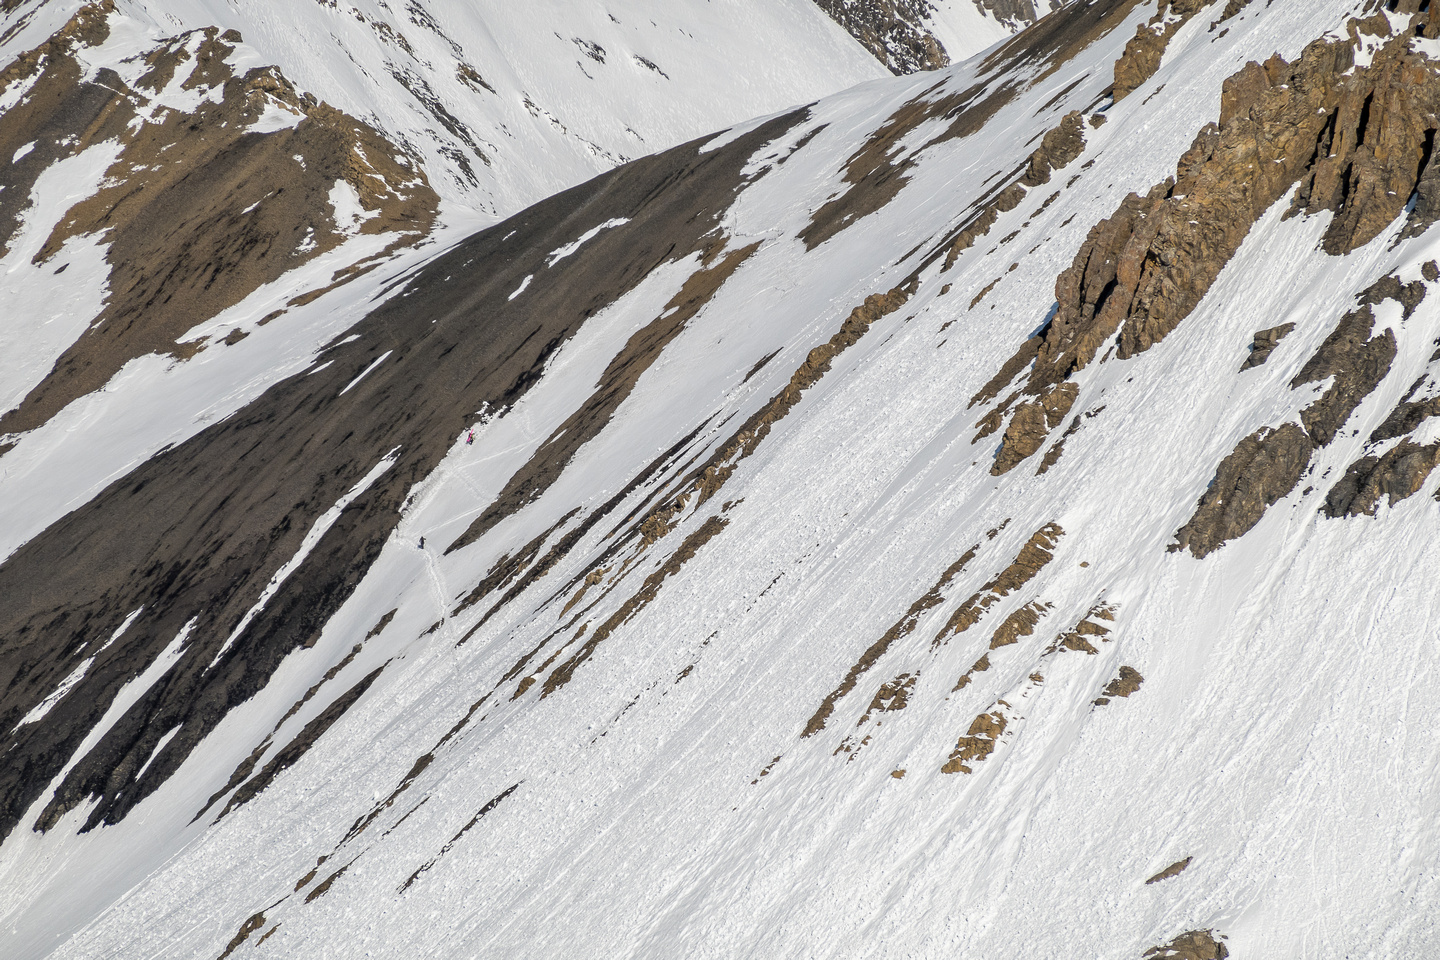 Two skiers make their way to the Robertson Col.